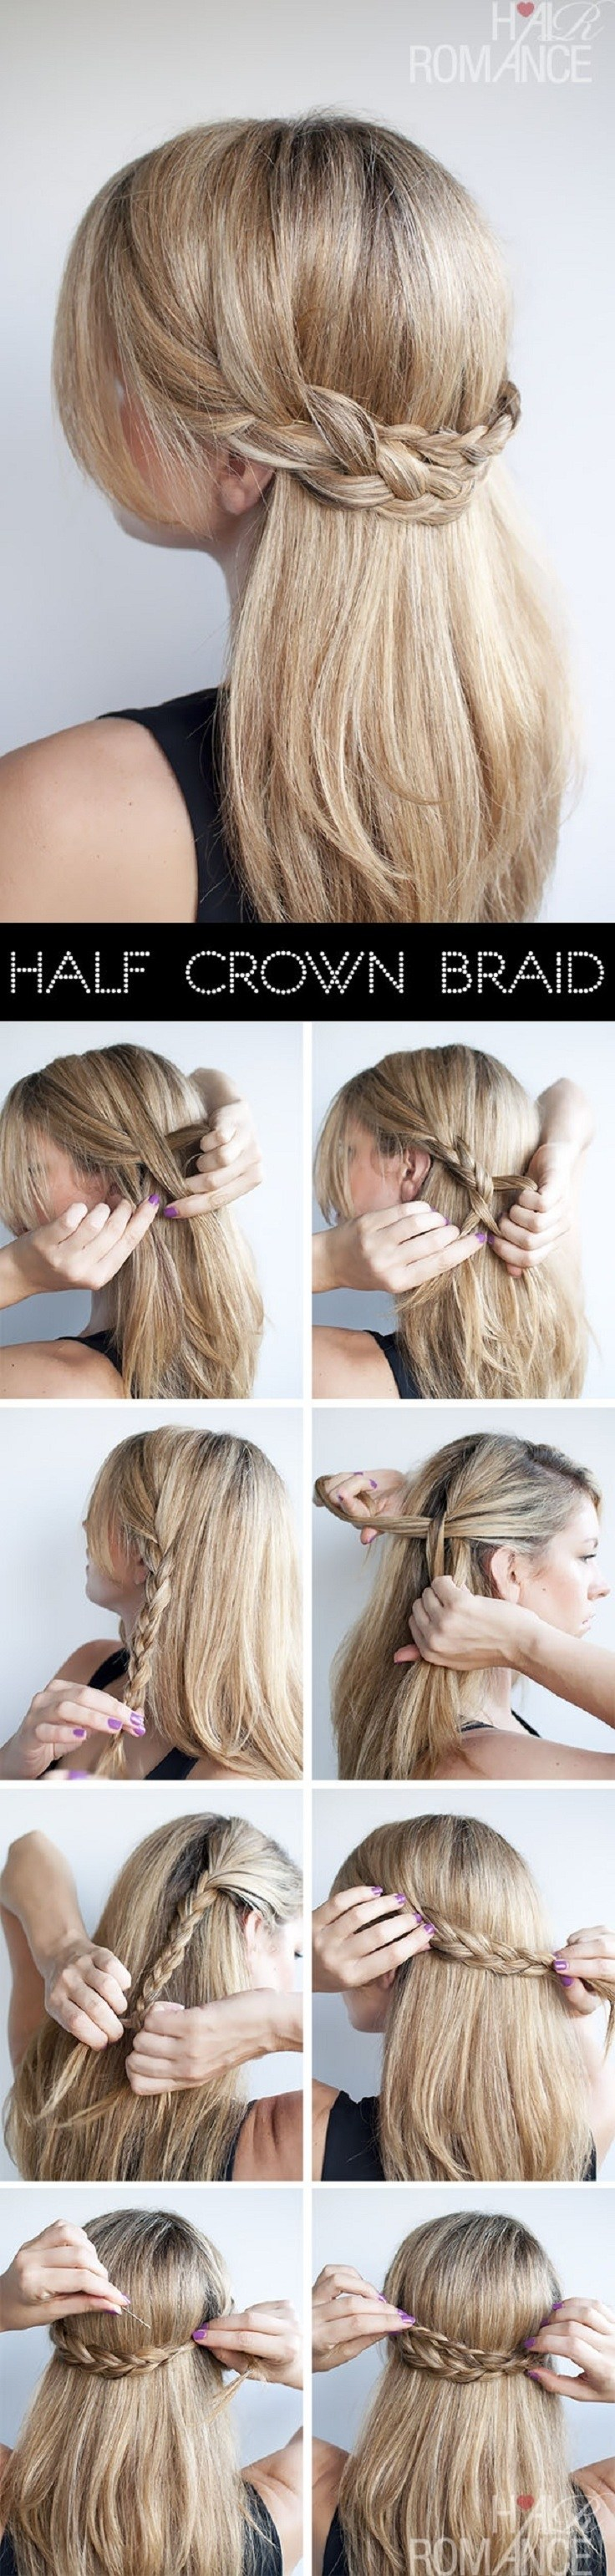 Cool Braid Hairstyle Ideas